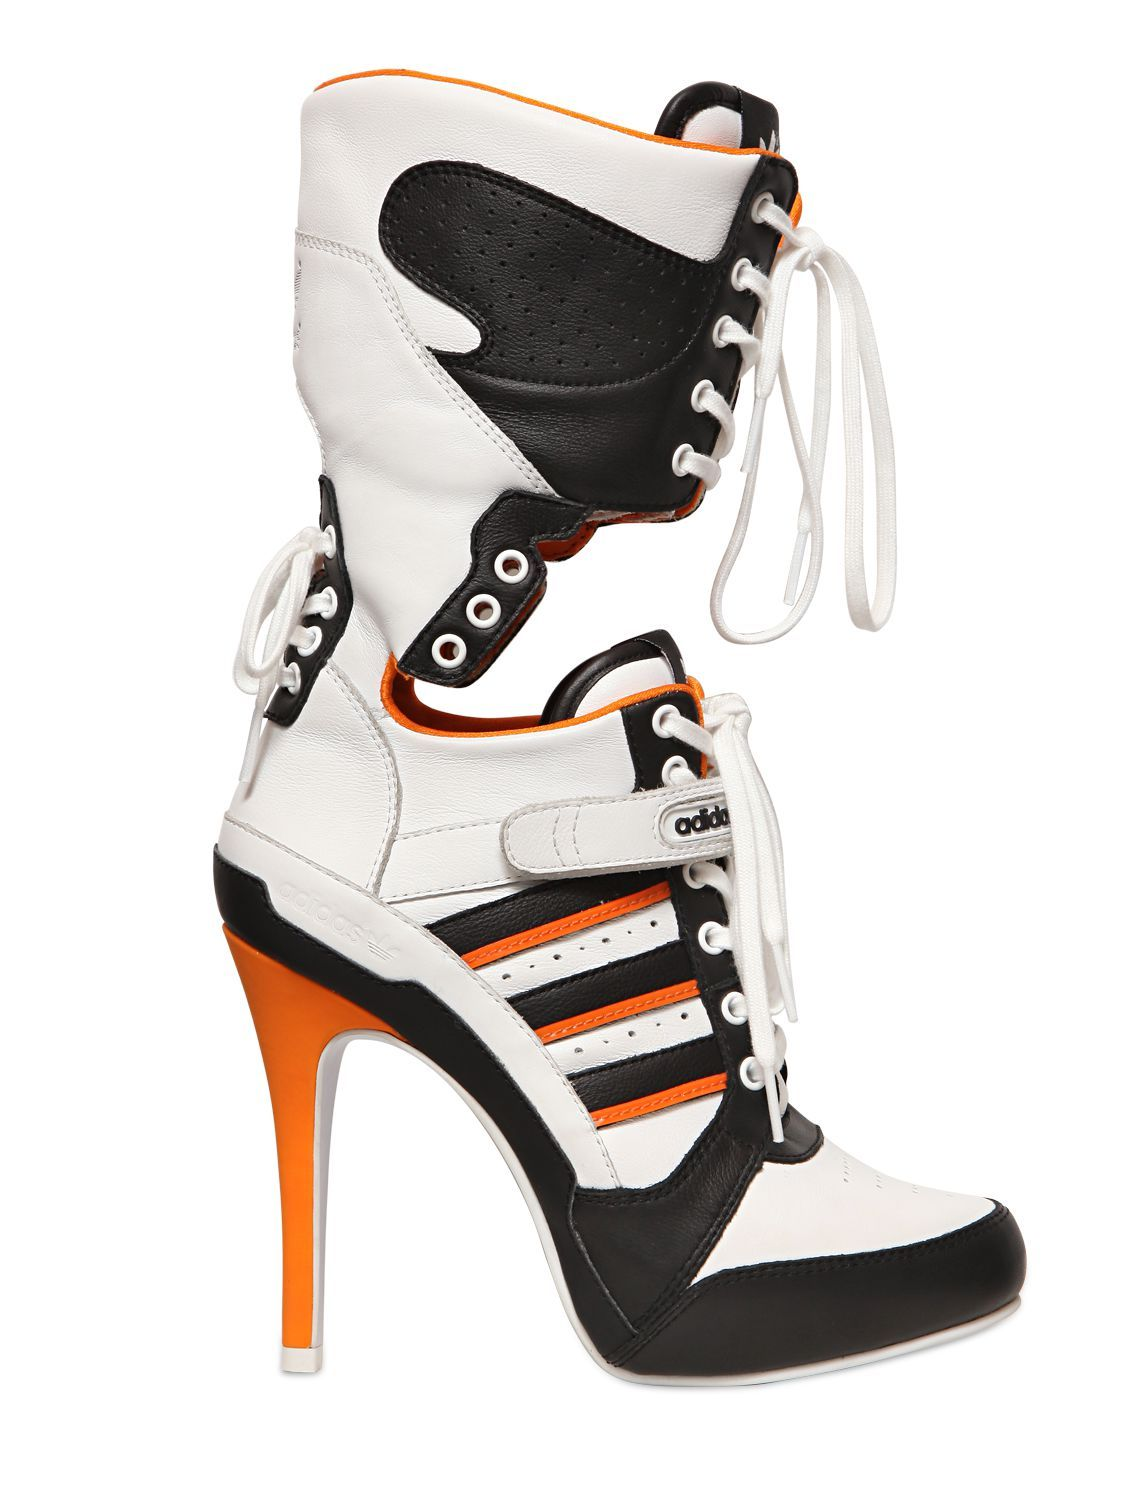 3333cdd52b32 ADIDAS BY JEREMY SCOTT 130MM JS HIGH HEEL LEATHER BOOTS - Harley Quinn Shoes  in Suicide